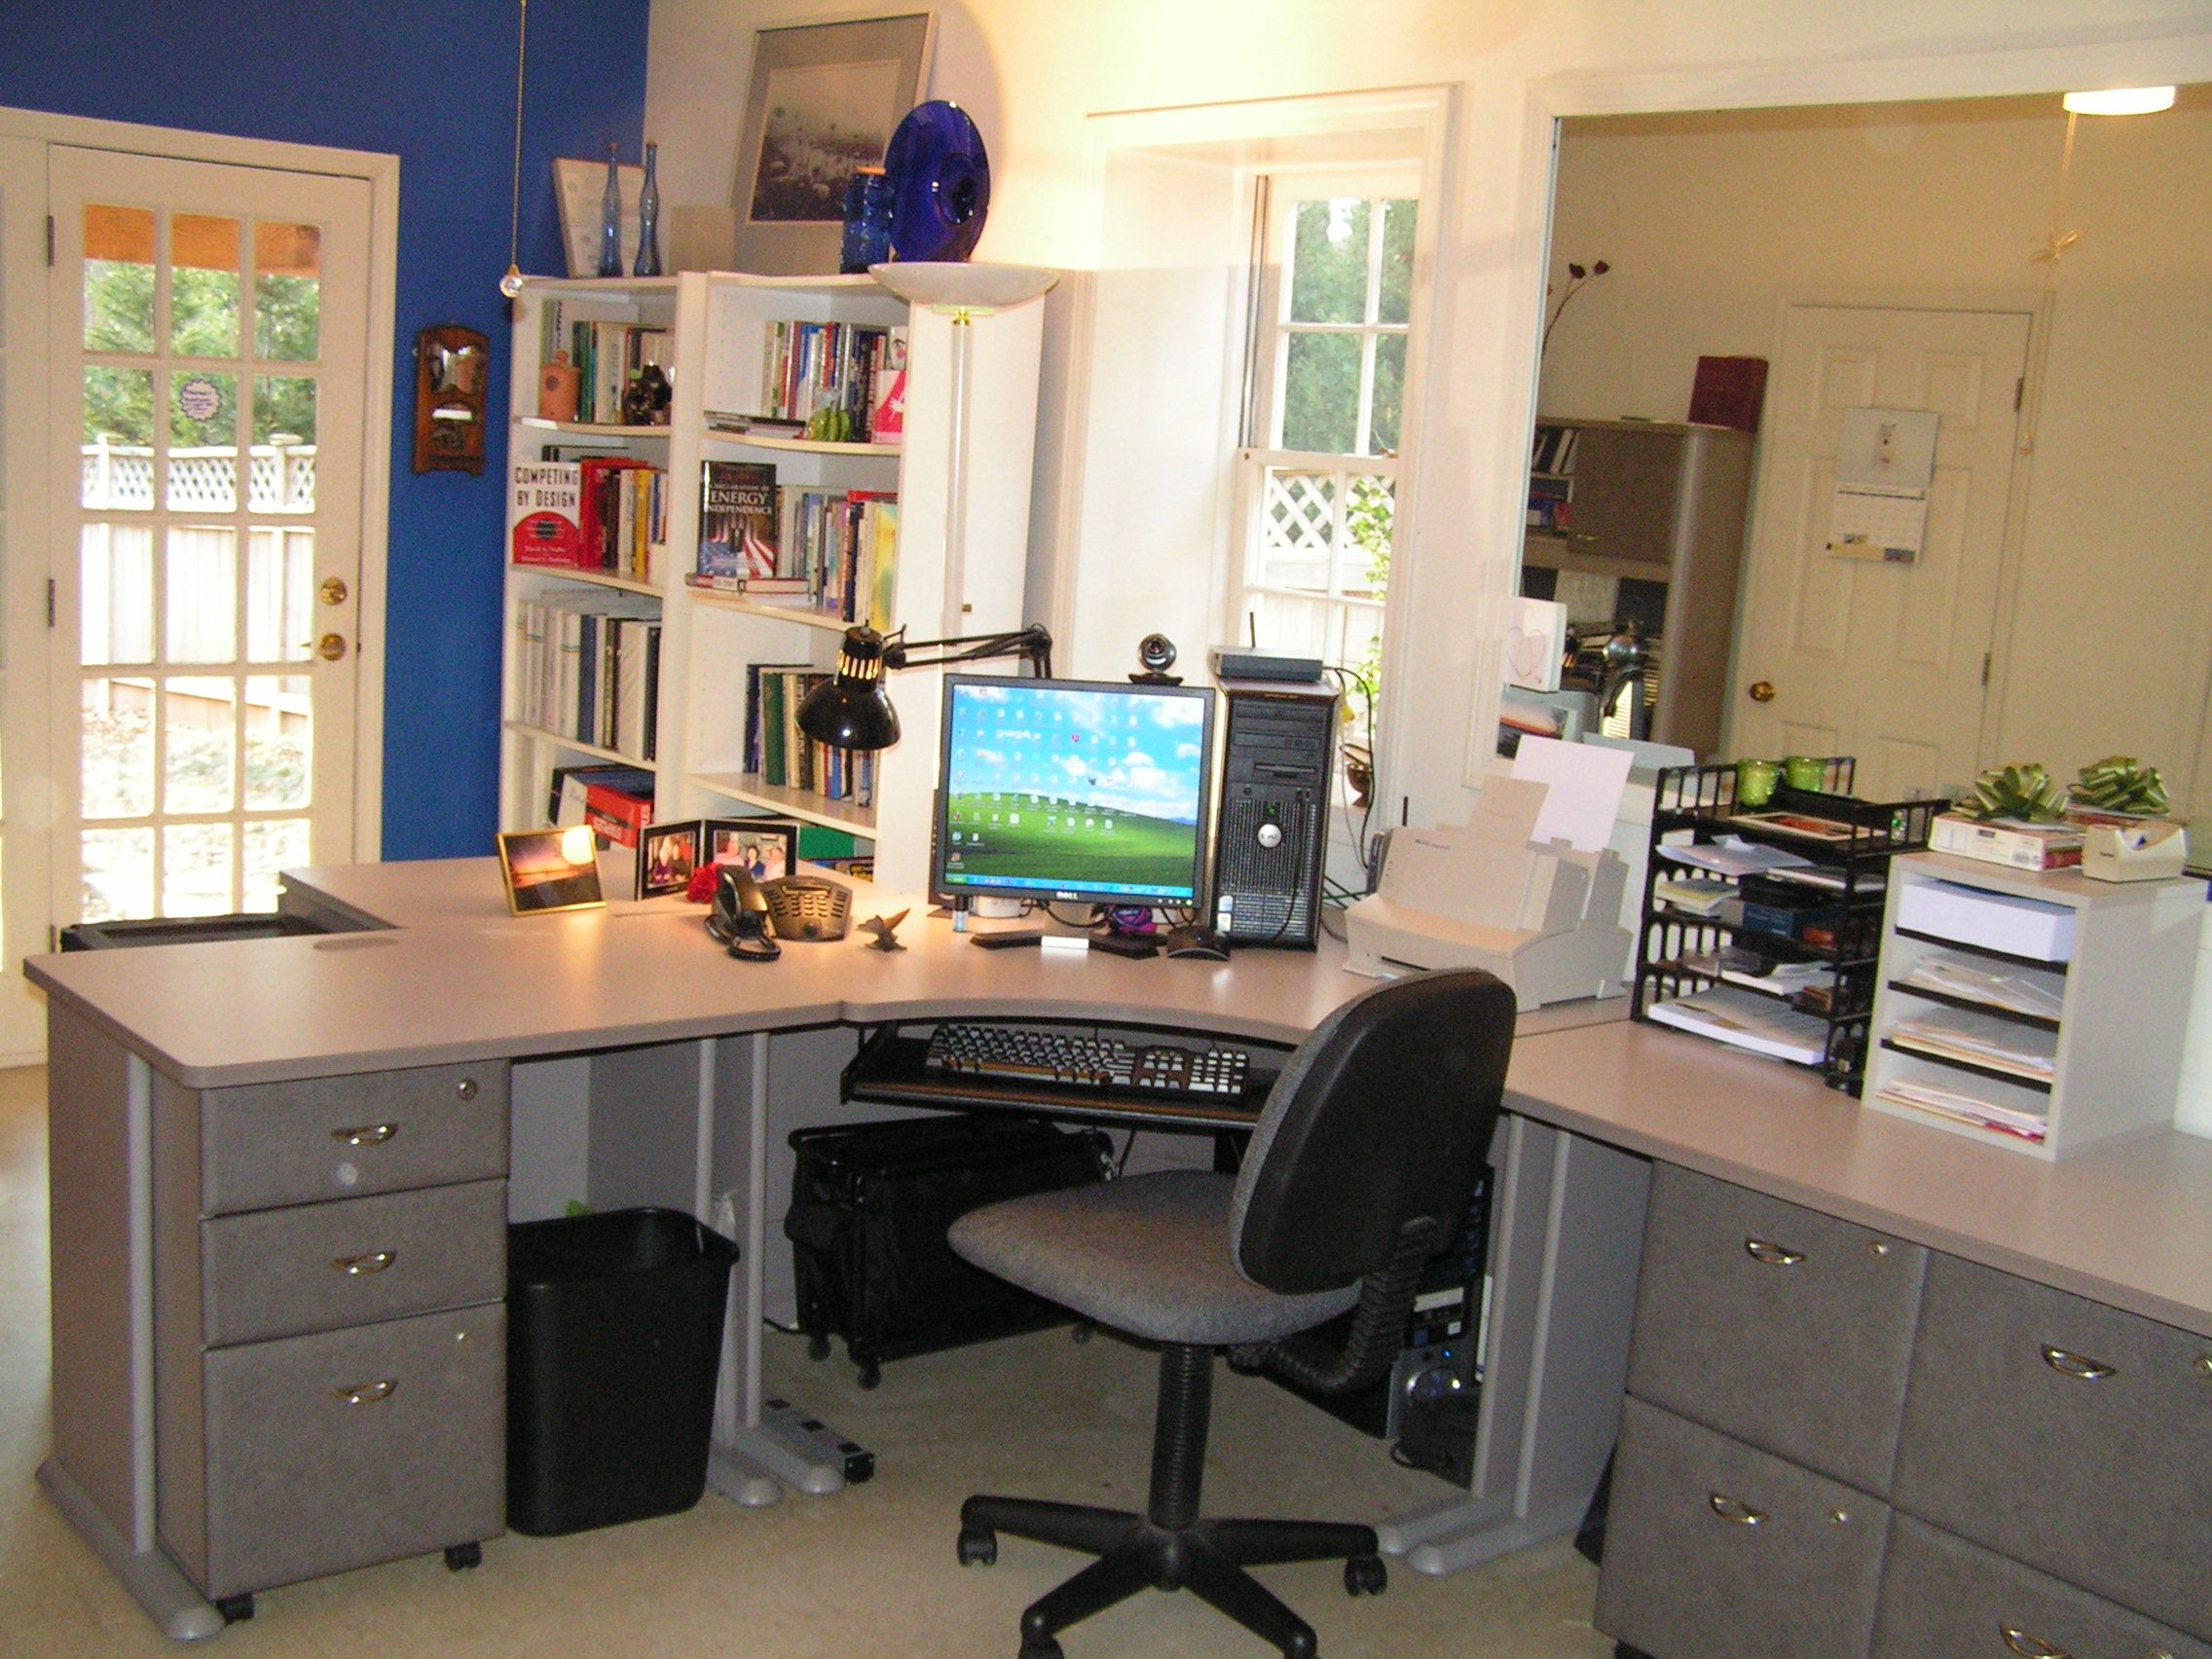 Home Renovation Designs | Home Office Office Design Concepts Ideas Home  Office Interior Design .